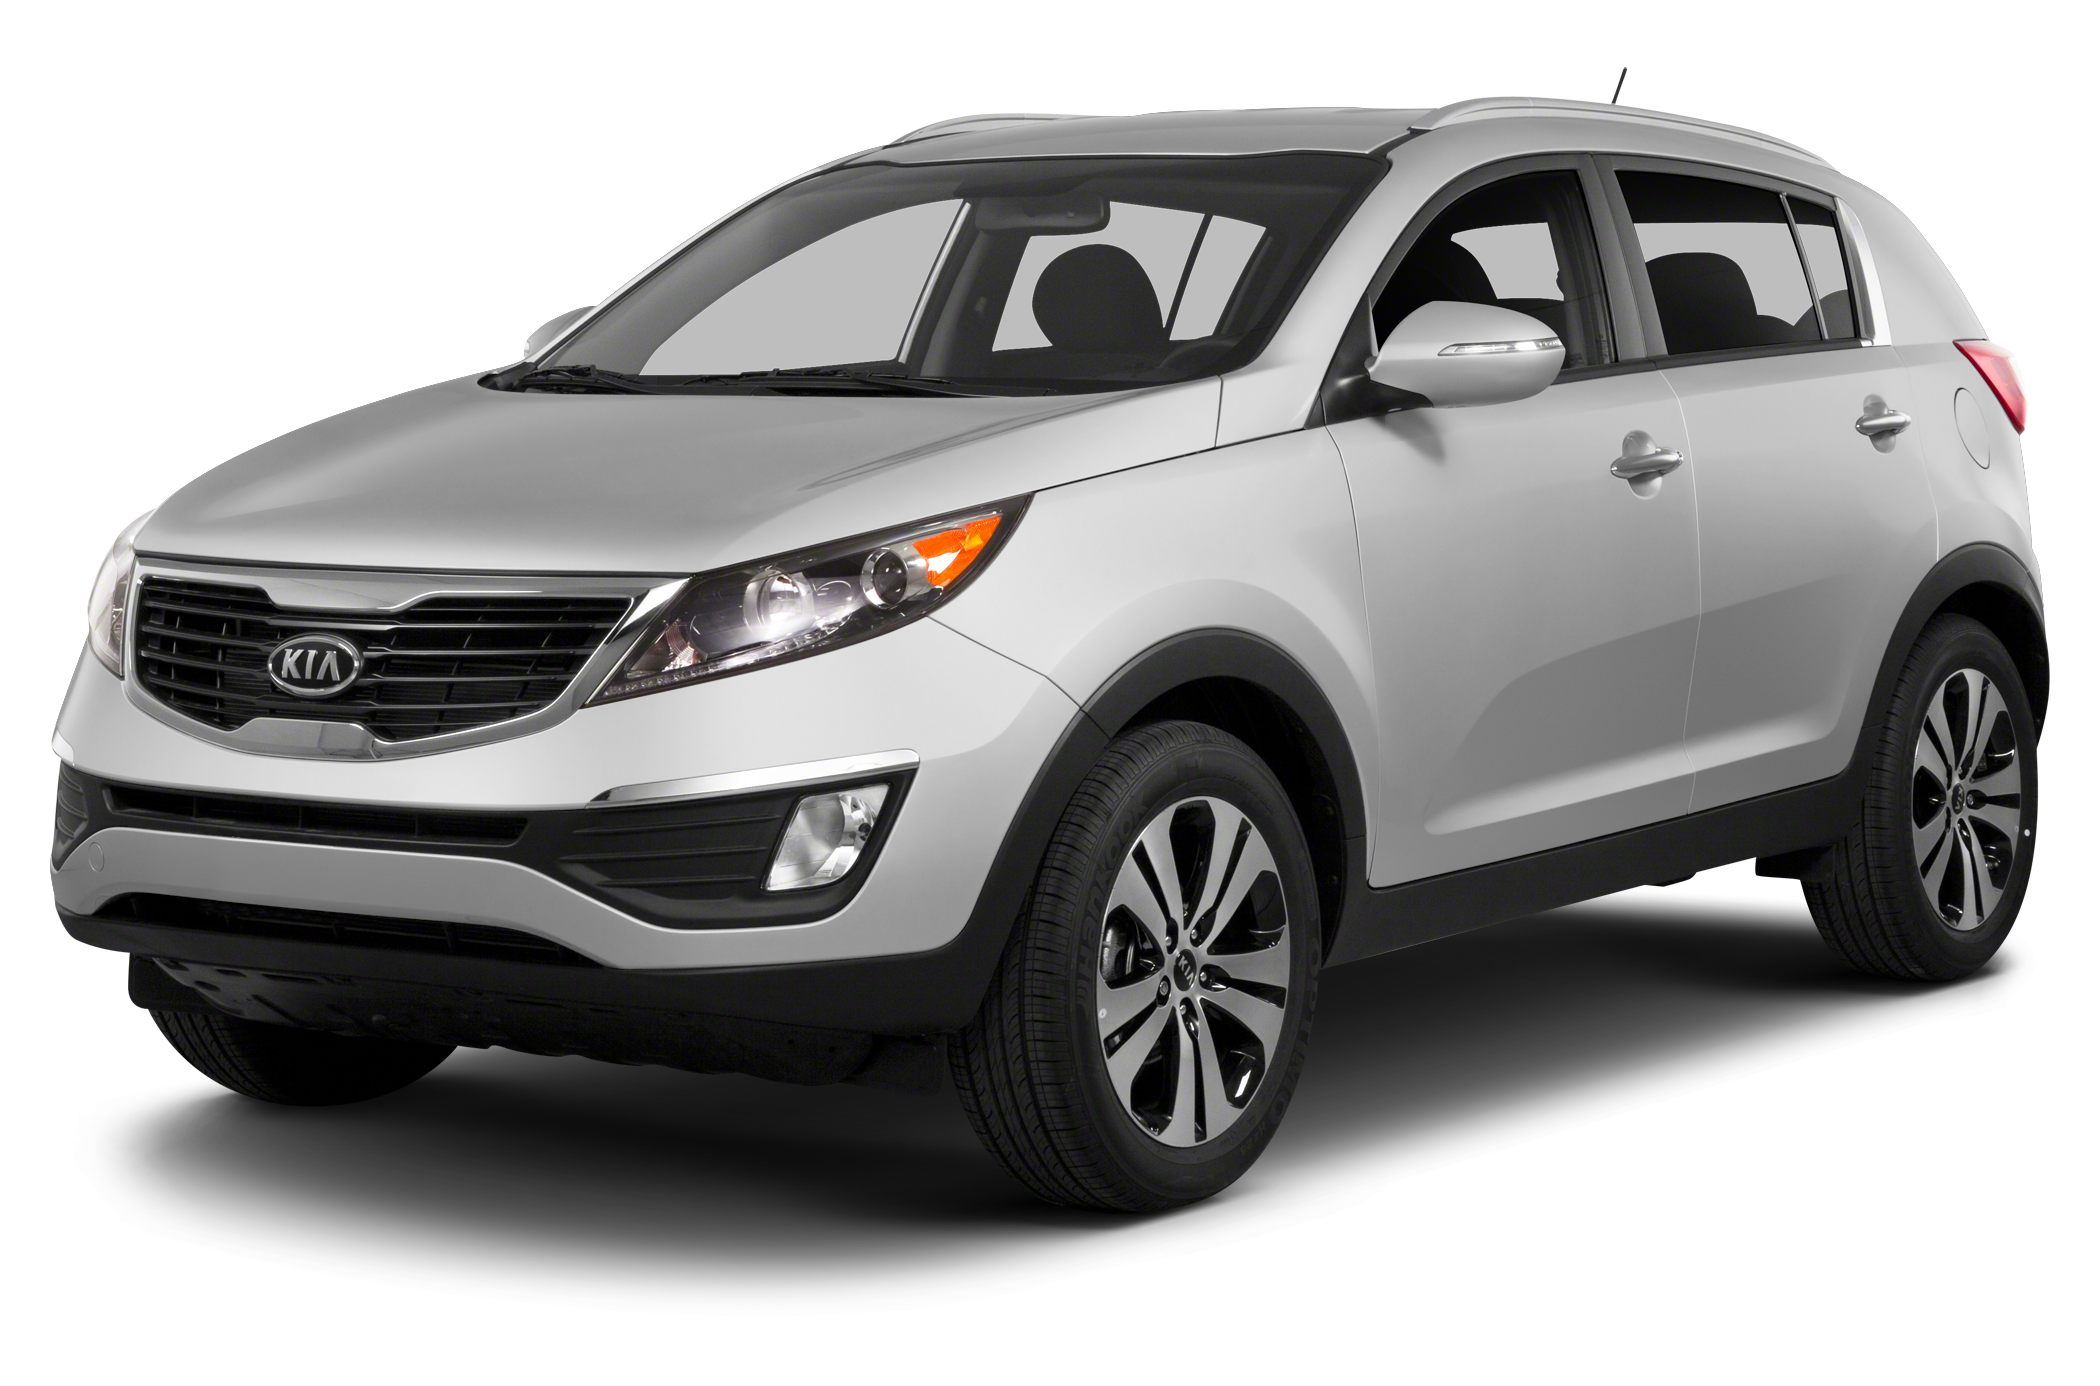 2013 Kia Sportage LX SUV for sale in Nashville for $18,299 with 25,462 miles